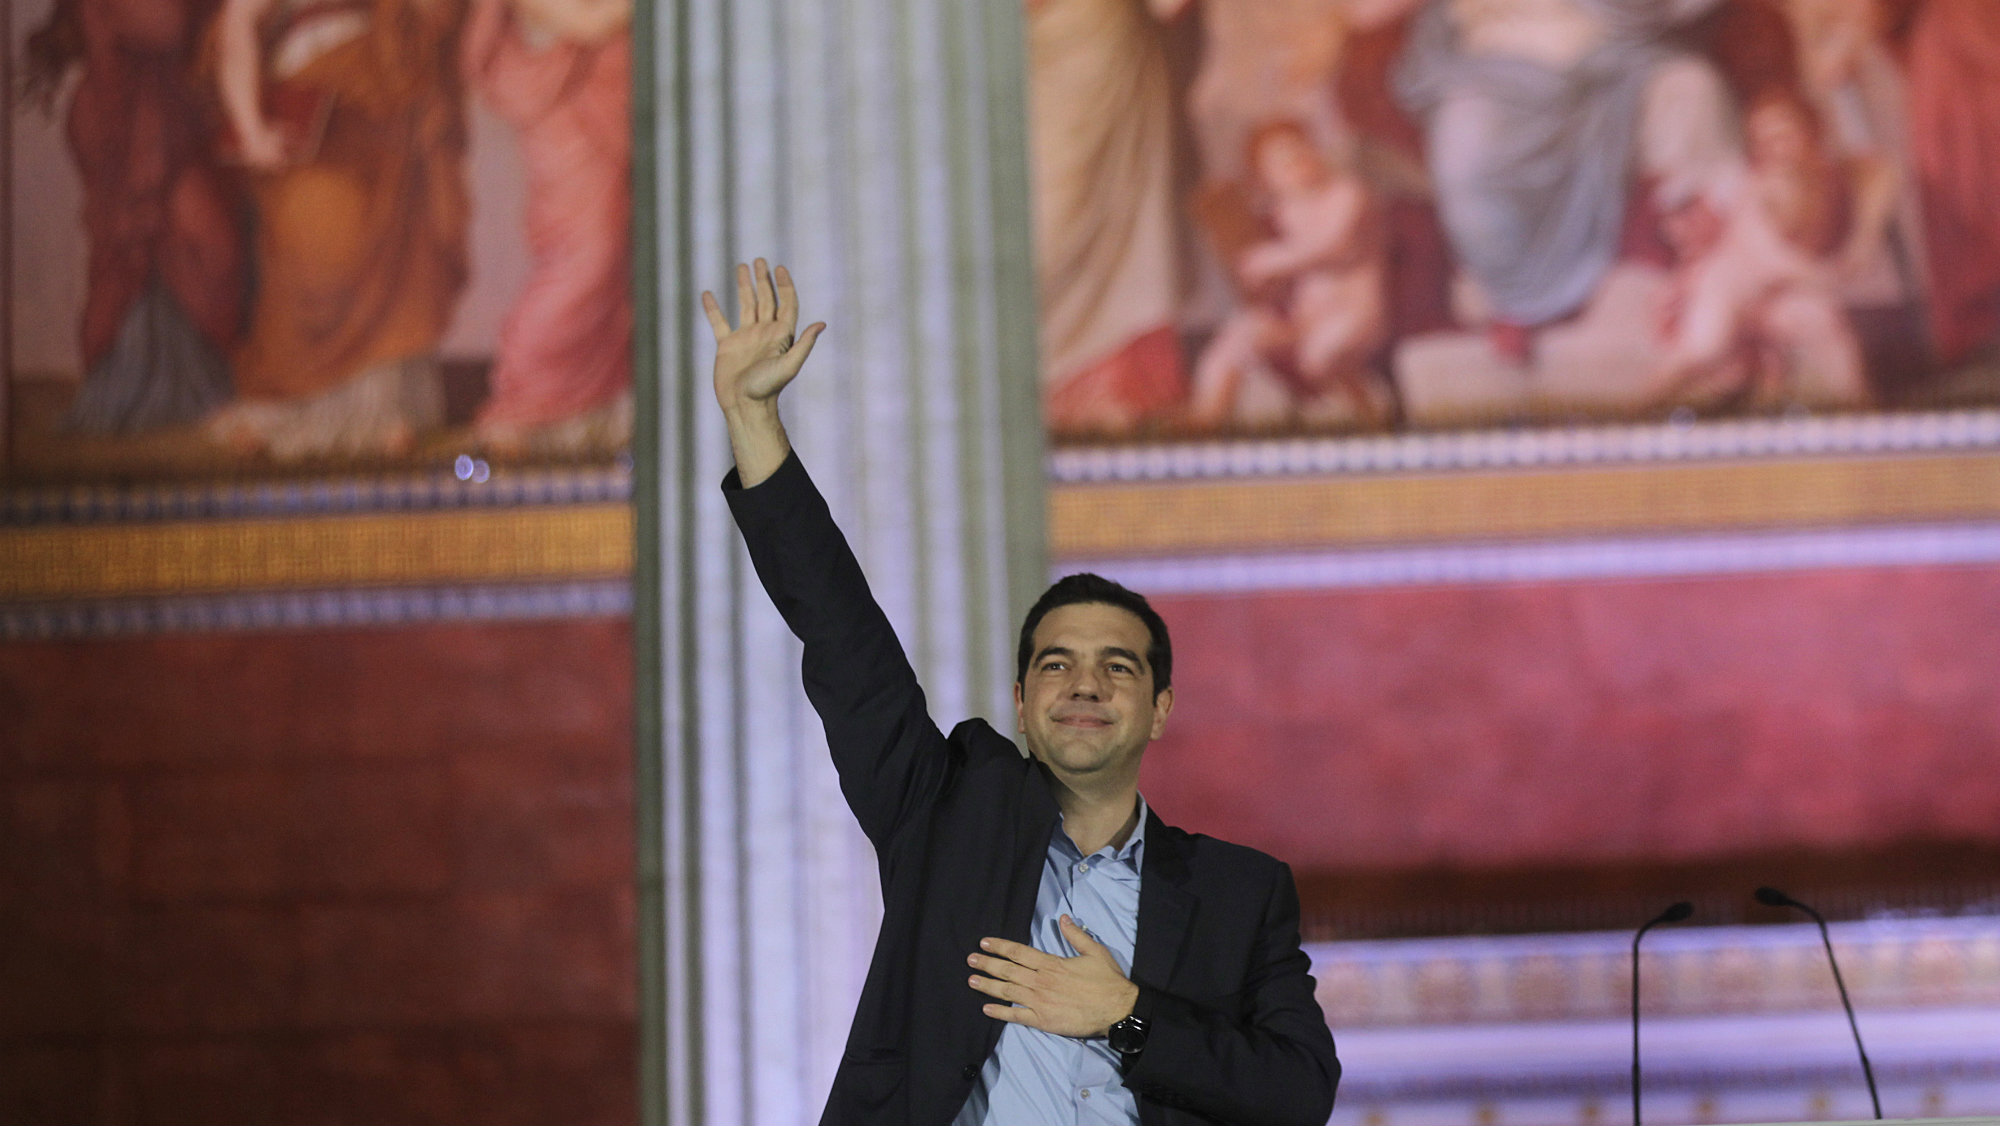 Alexis Tsipras, leader and head of radical leftist Syriza party, greets supporters after the initial election results for the Greece general elections in Athens, Greece, 25 January 2015.